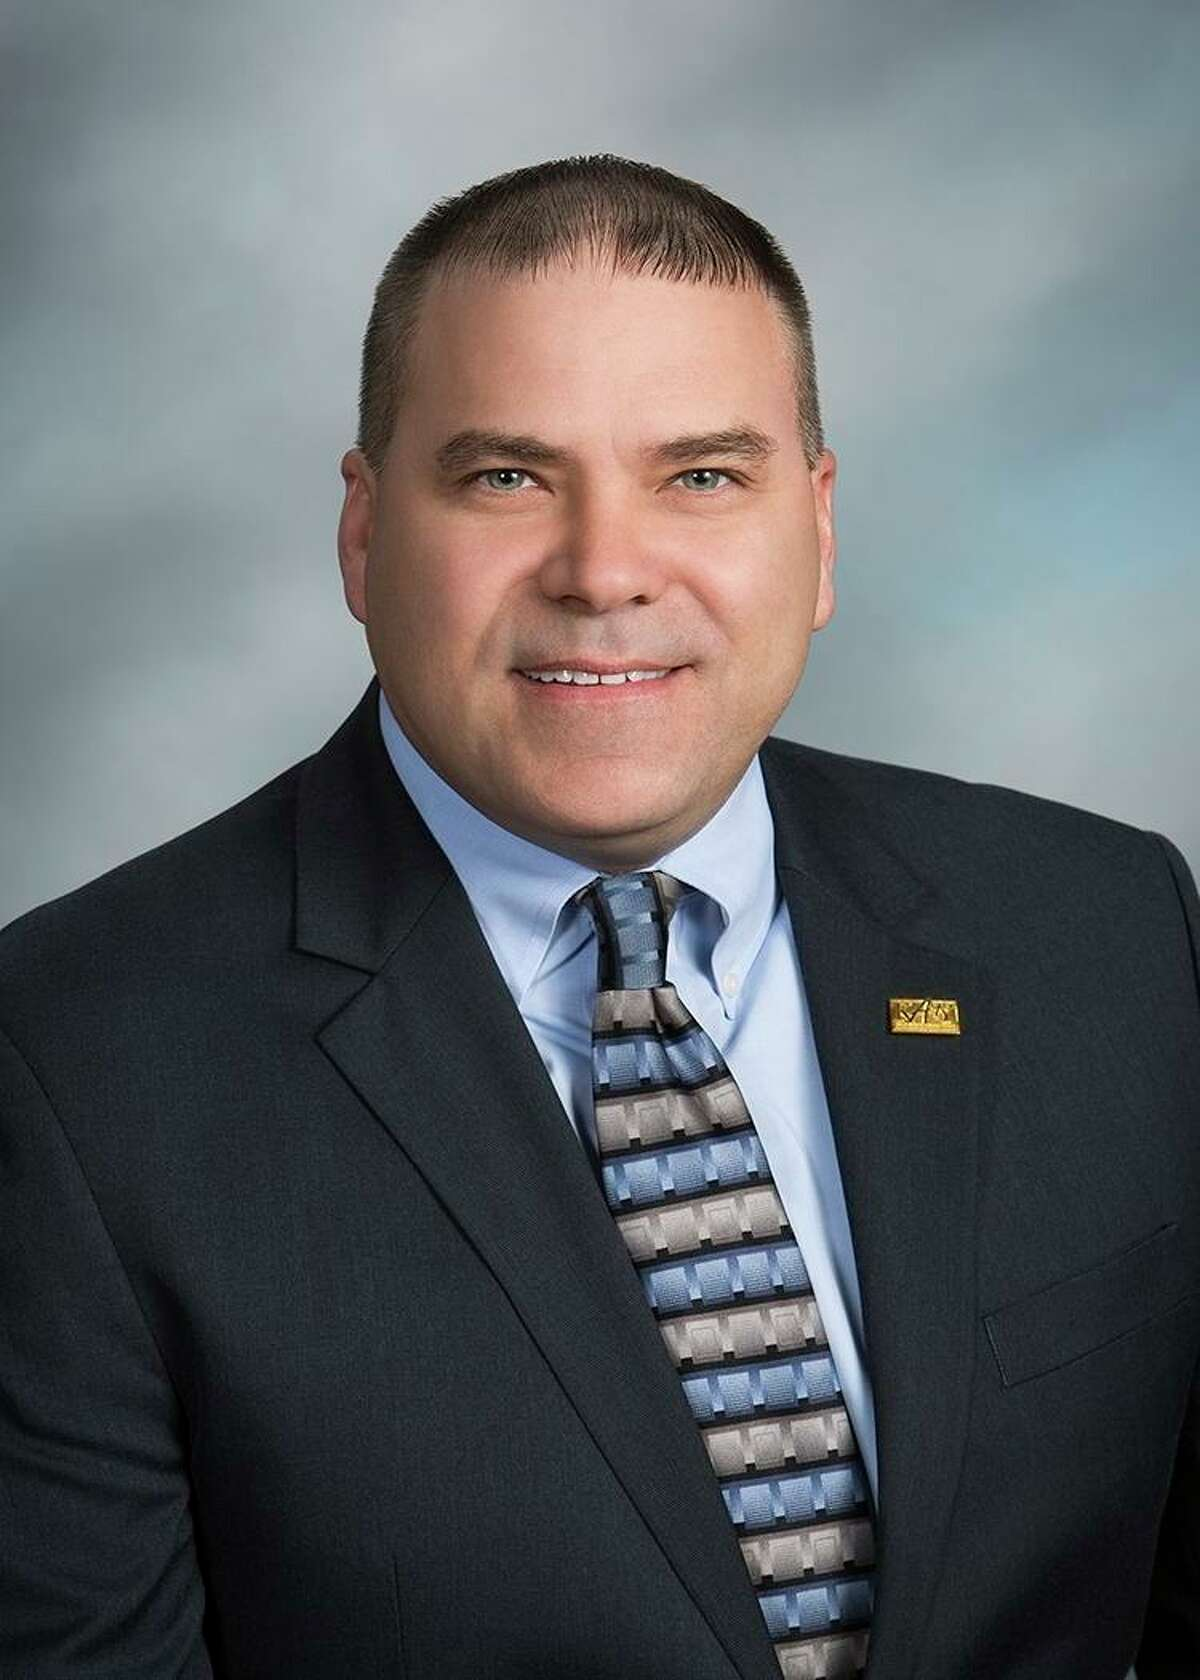 Katy Independent School District Superintendent Ken Gregorski is slated to offer his State of the District address on Friday, Oct. 23. The annual event will be held virtually.